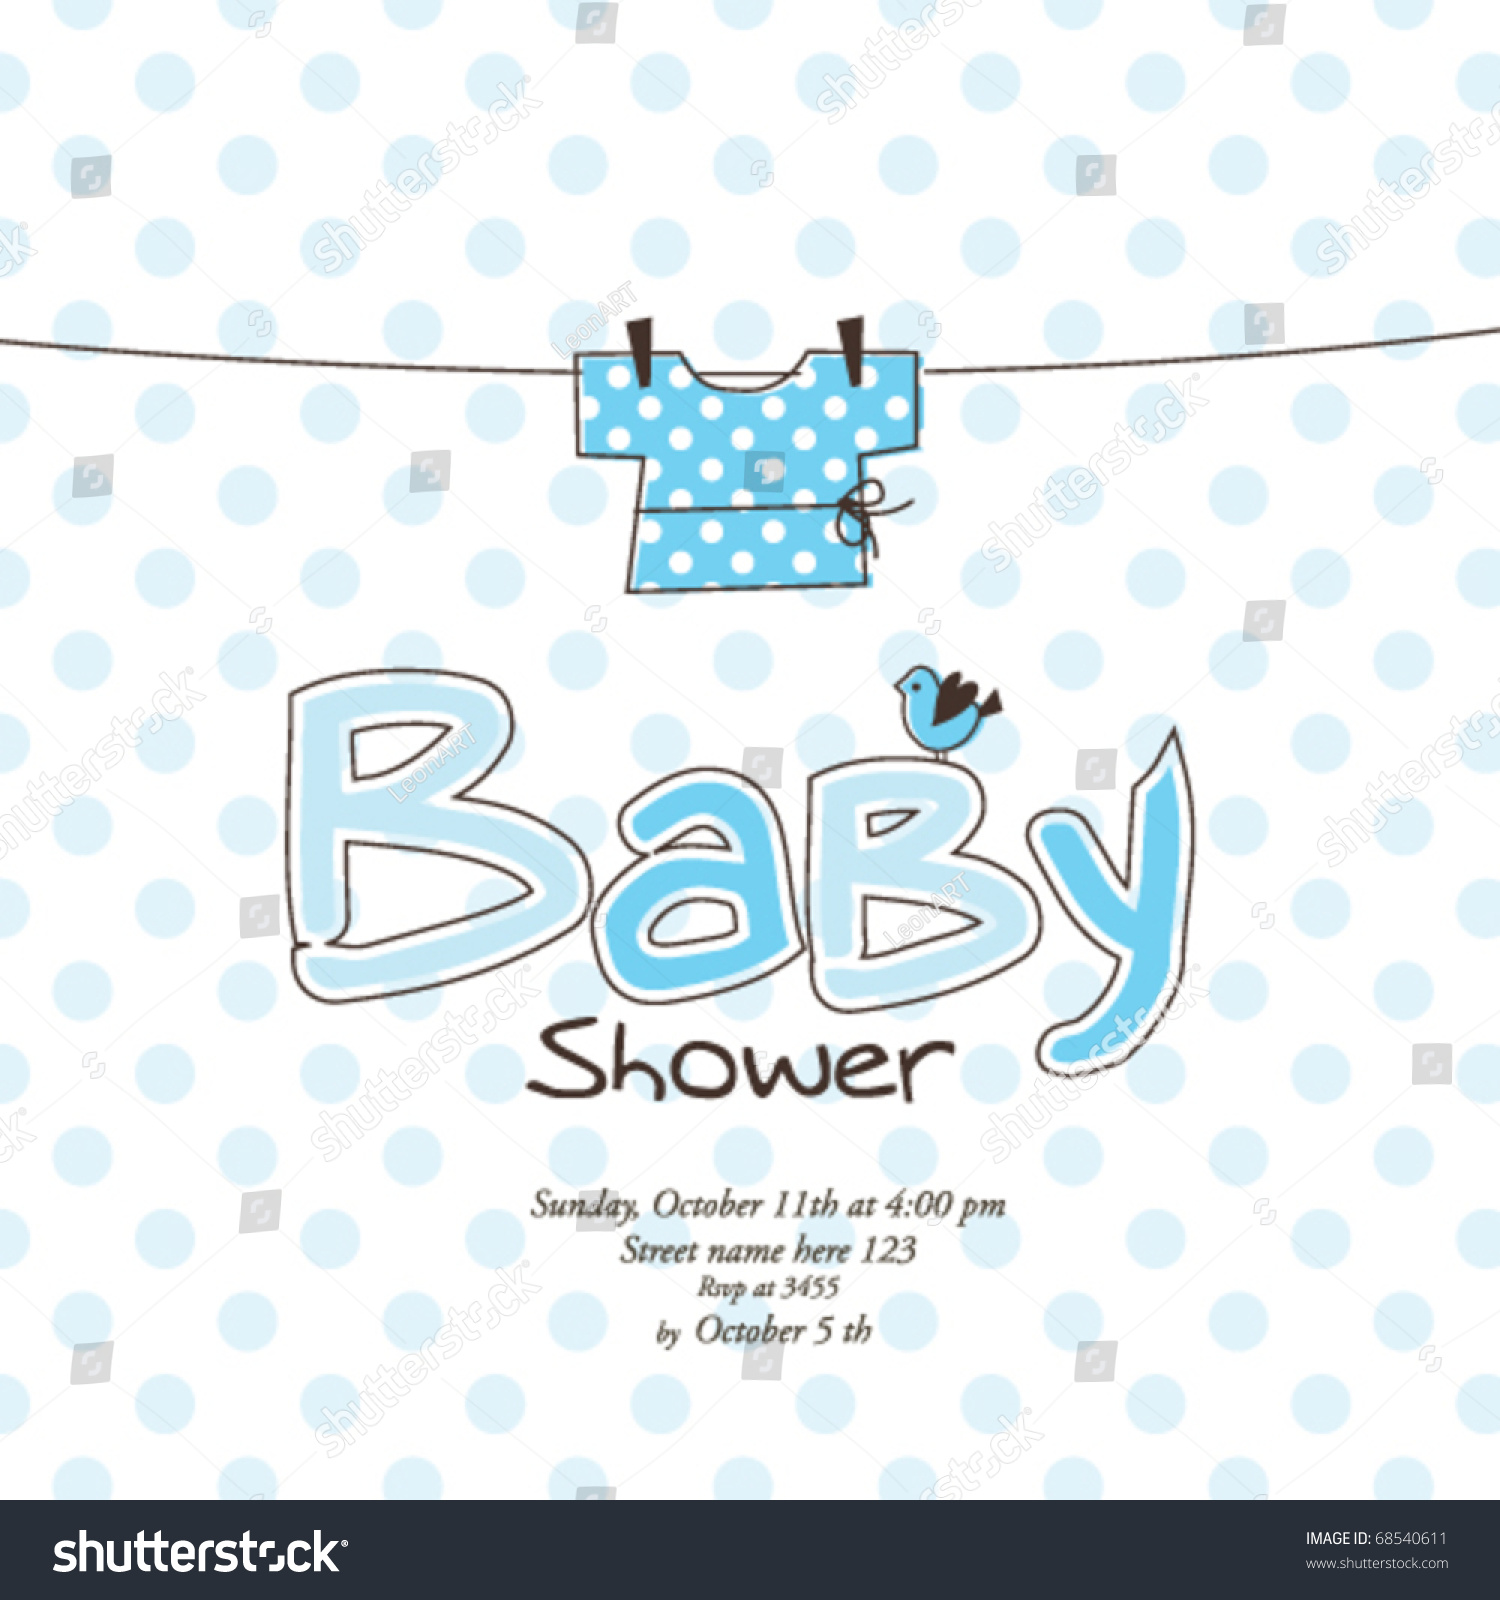 baby shower card template stock vector illustration 68540611